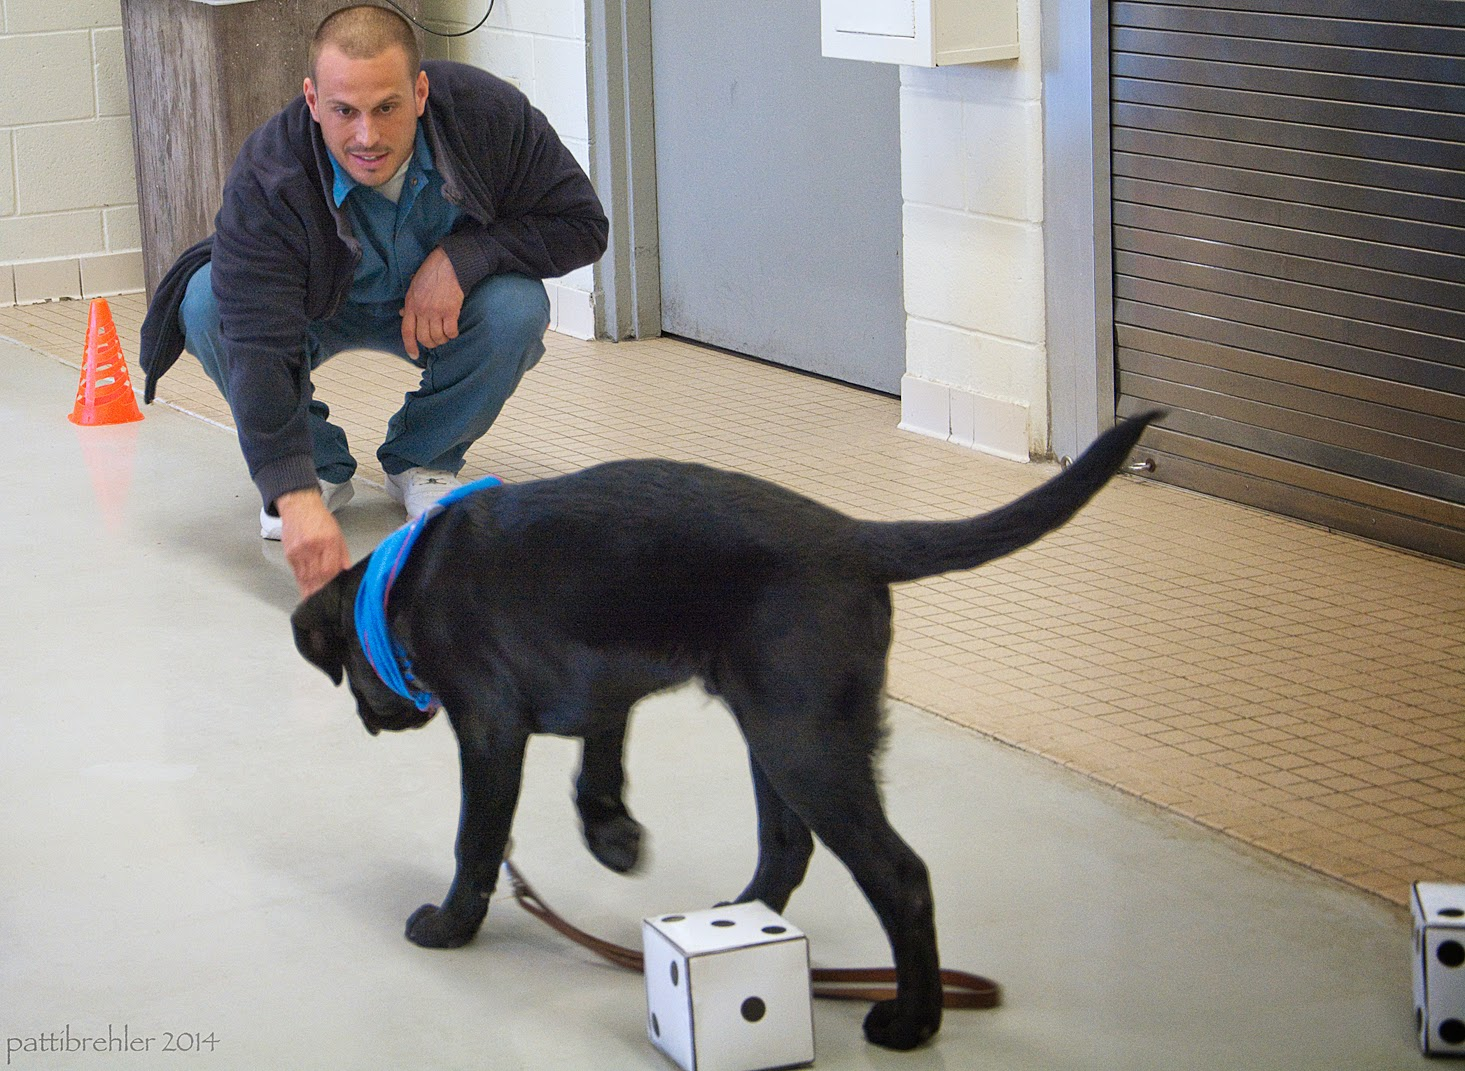 A young black lab puppy wearing a blue bnadana is walking away from the camera toward a man that is squatting down in the background and to the left. The man is wearing a dark blue fleece jacket and blue pants. He is calling the puppy toward him, his left arm is resting on his left knee and his right hand is tapping the painted concrete floor. The puppy is dragging his leash past two large dice on the floor. There is also a small orange cone on the floor behind and to the left of the man.